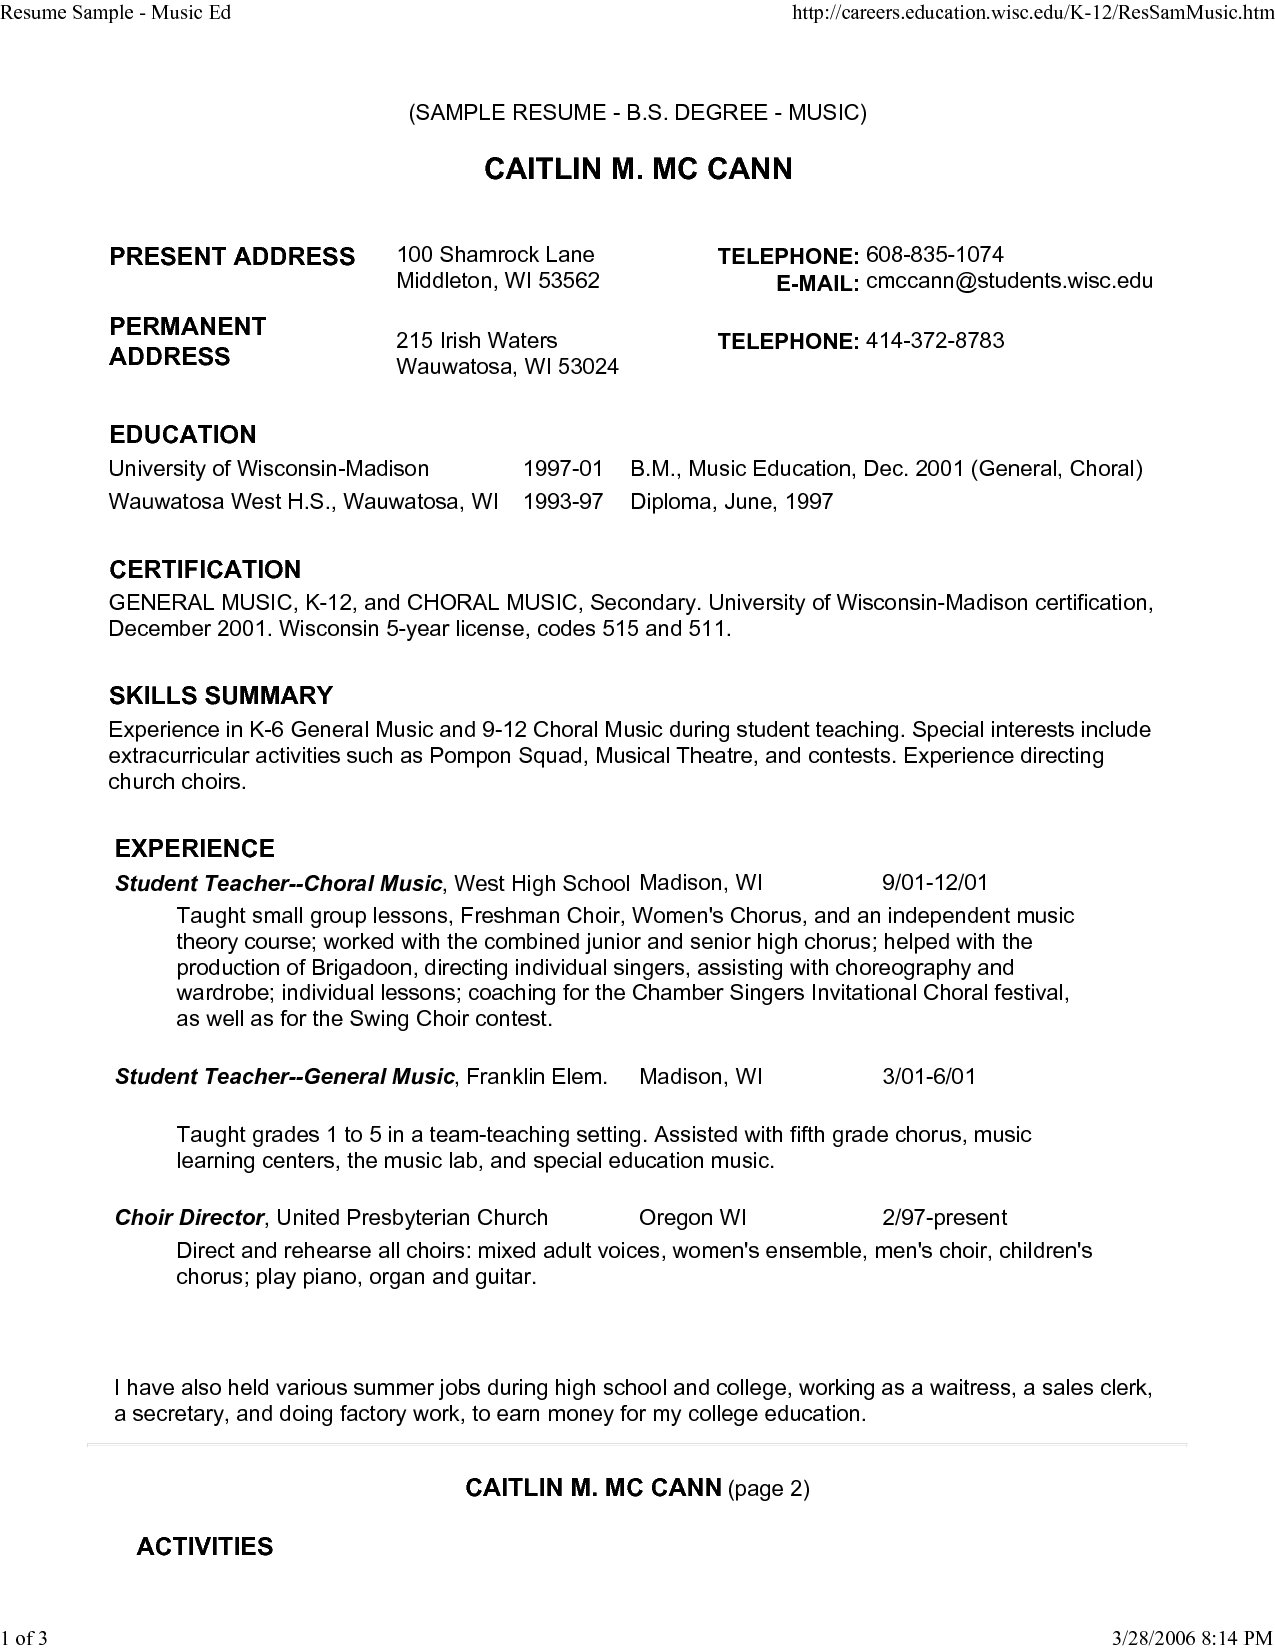 Music Resume Example Superb Sample Musical Theatre Resume Best